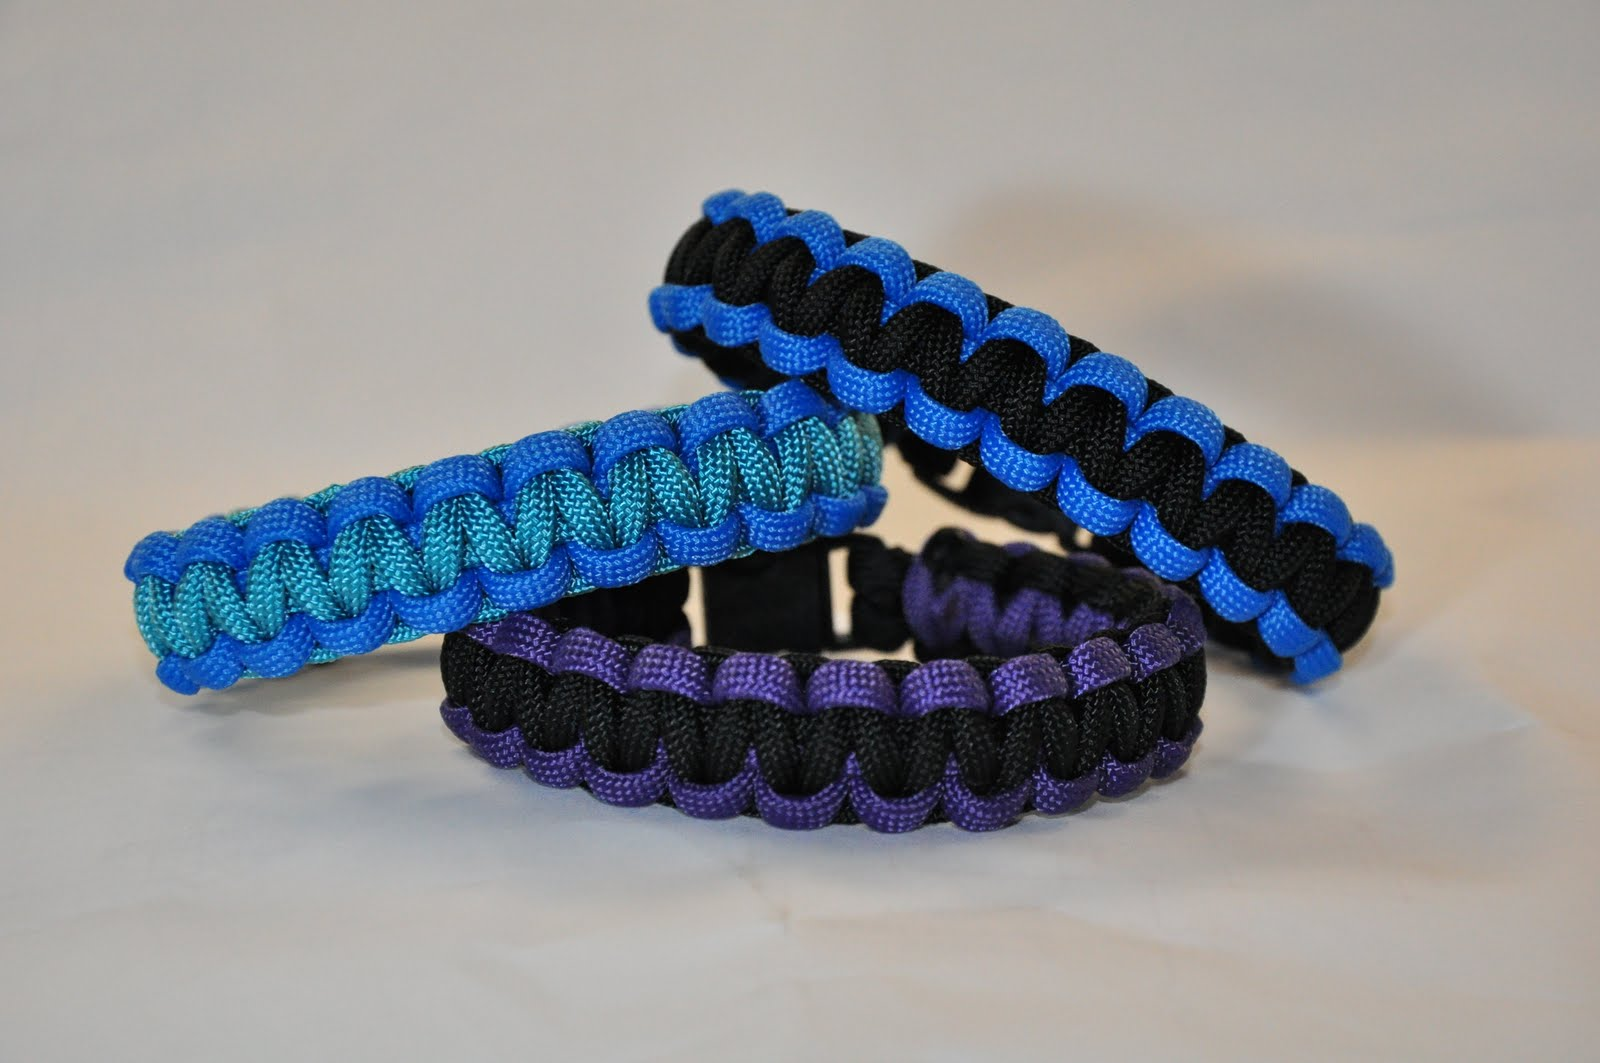 paracord designs survival bracelets new colors